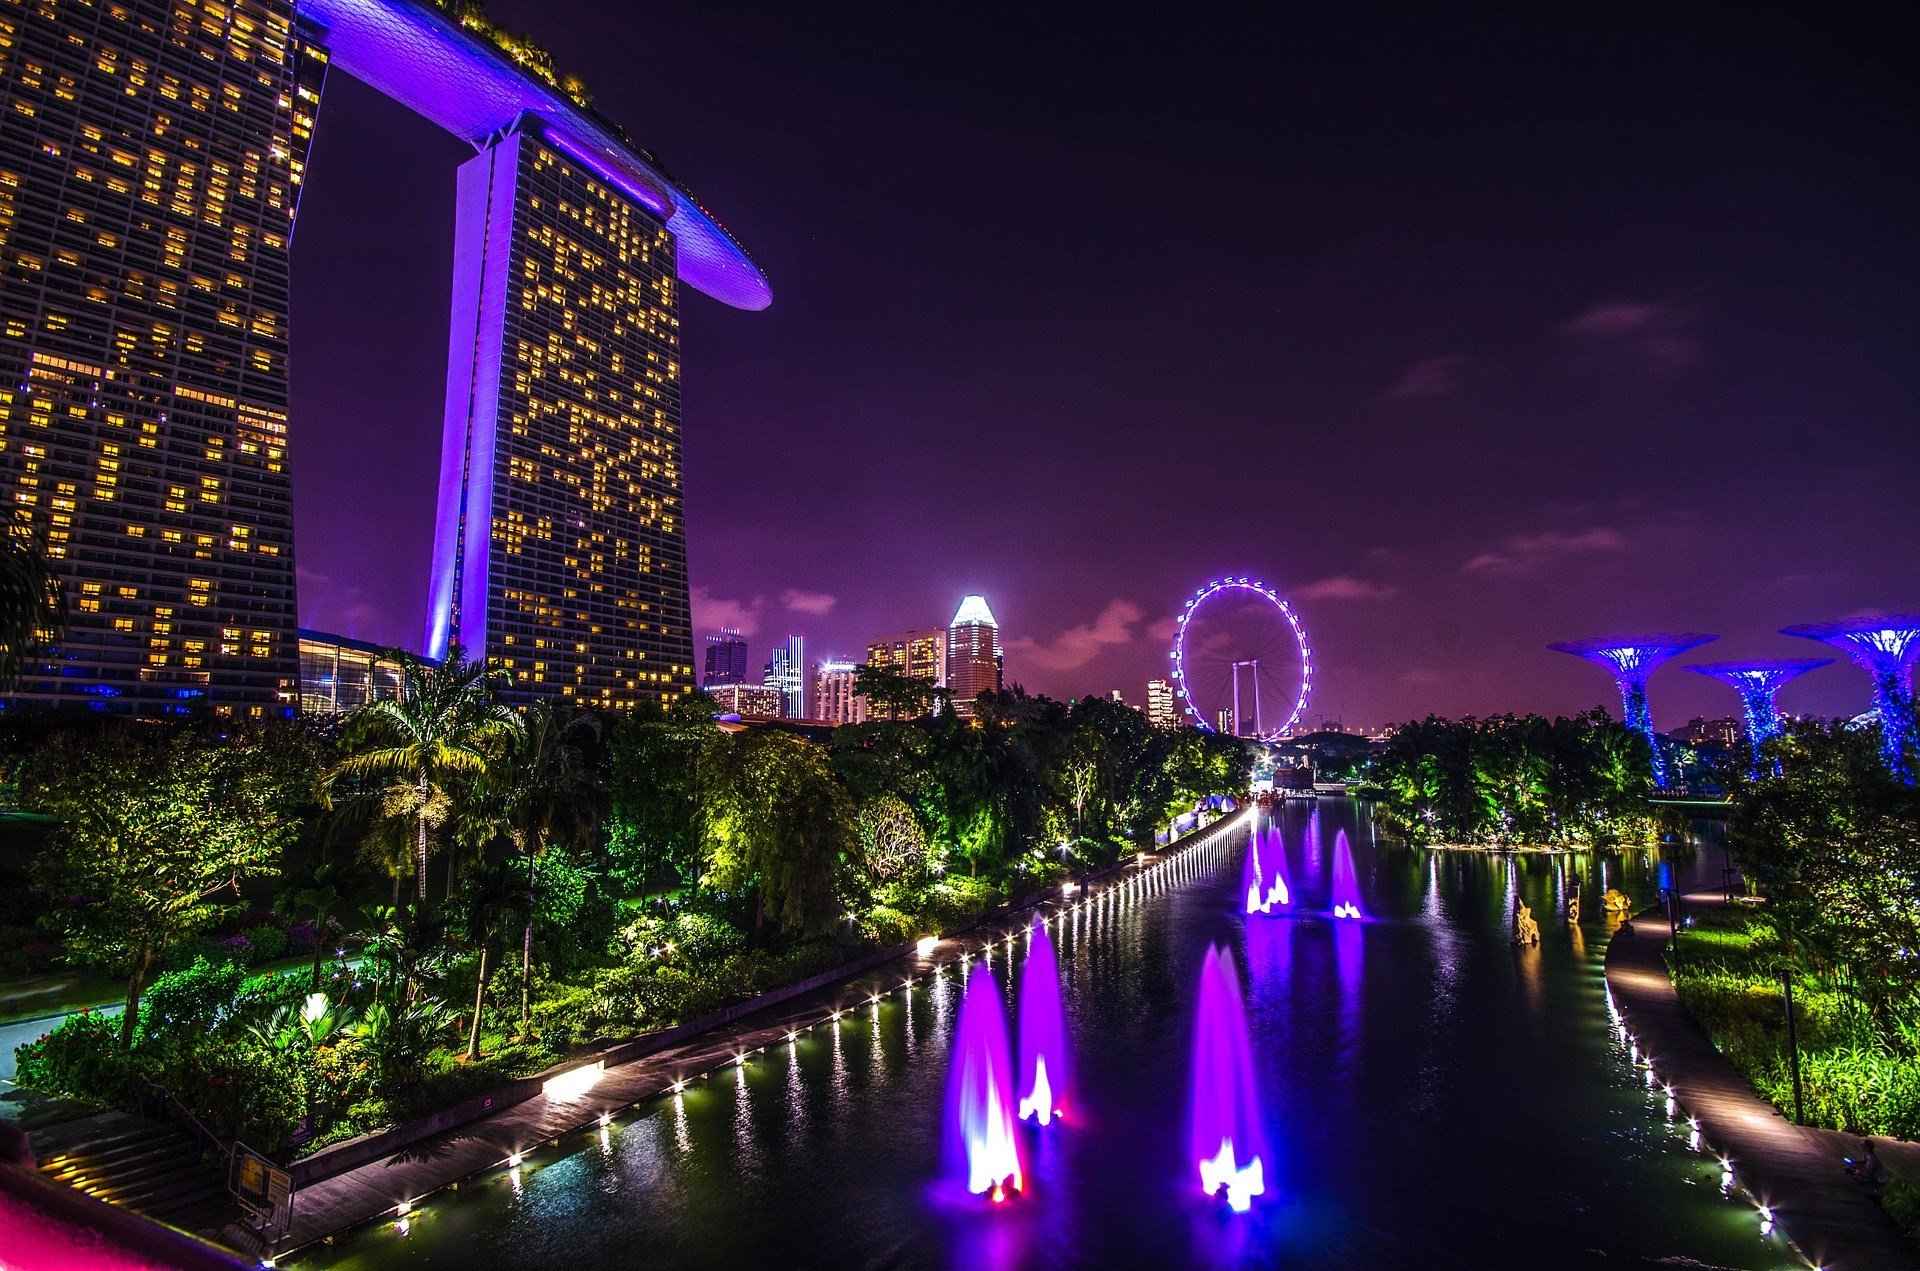 COMBO: Gardens by the Bay + Đài quan sát Marina Bay Sands SkyPark